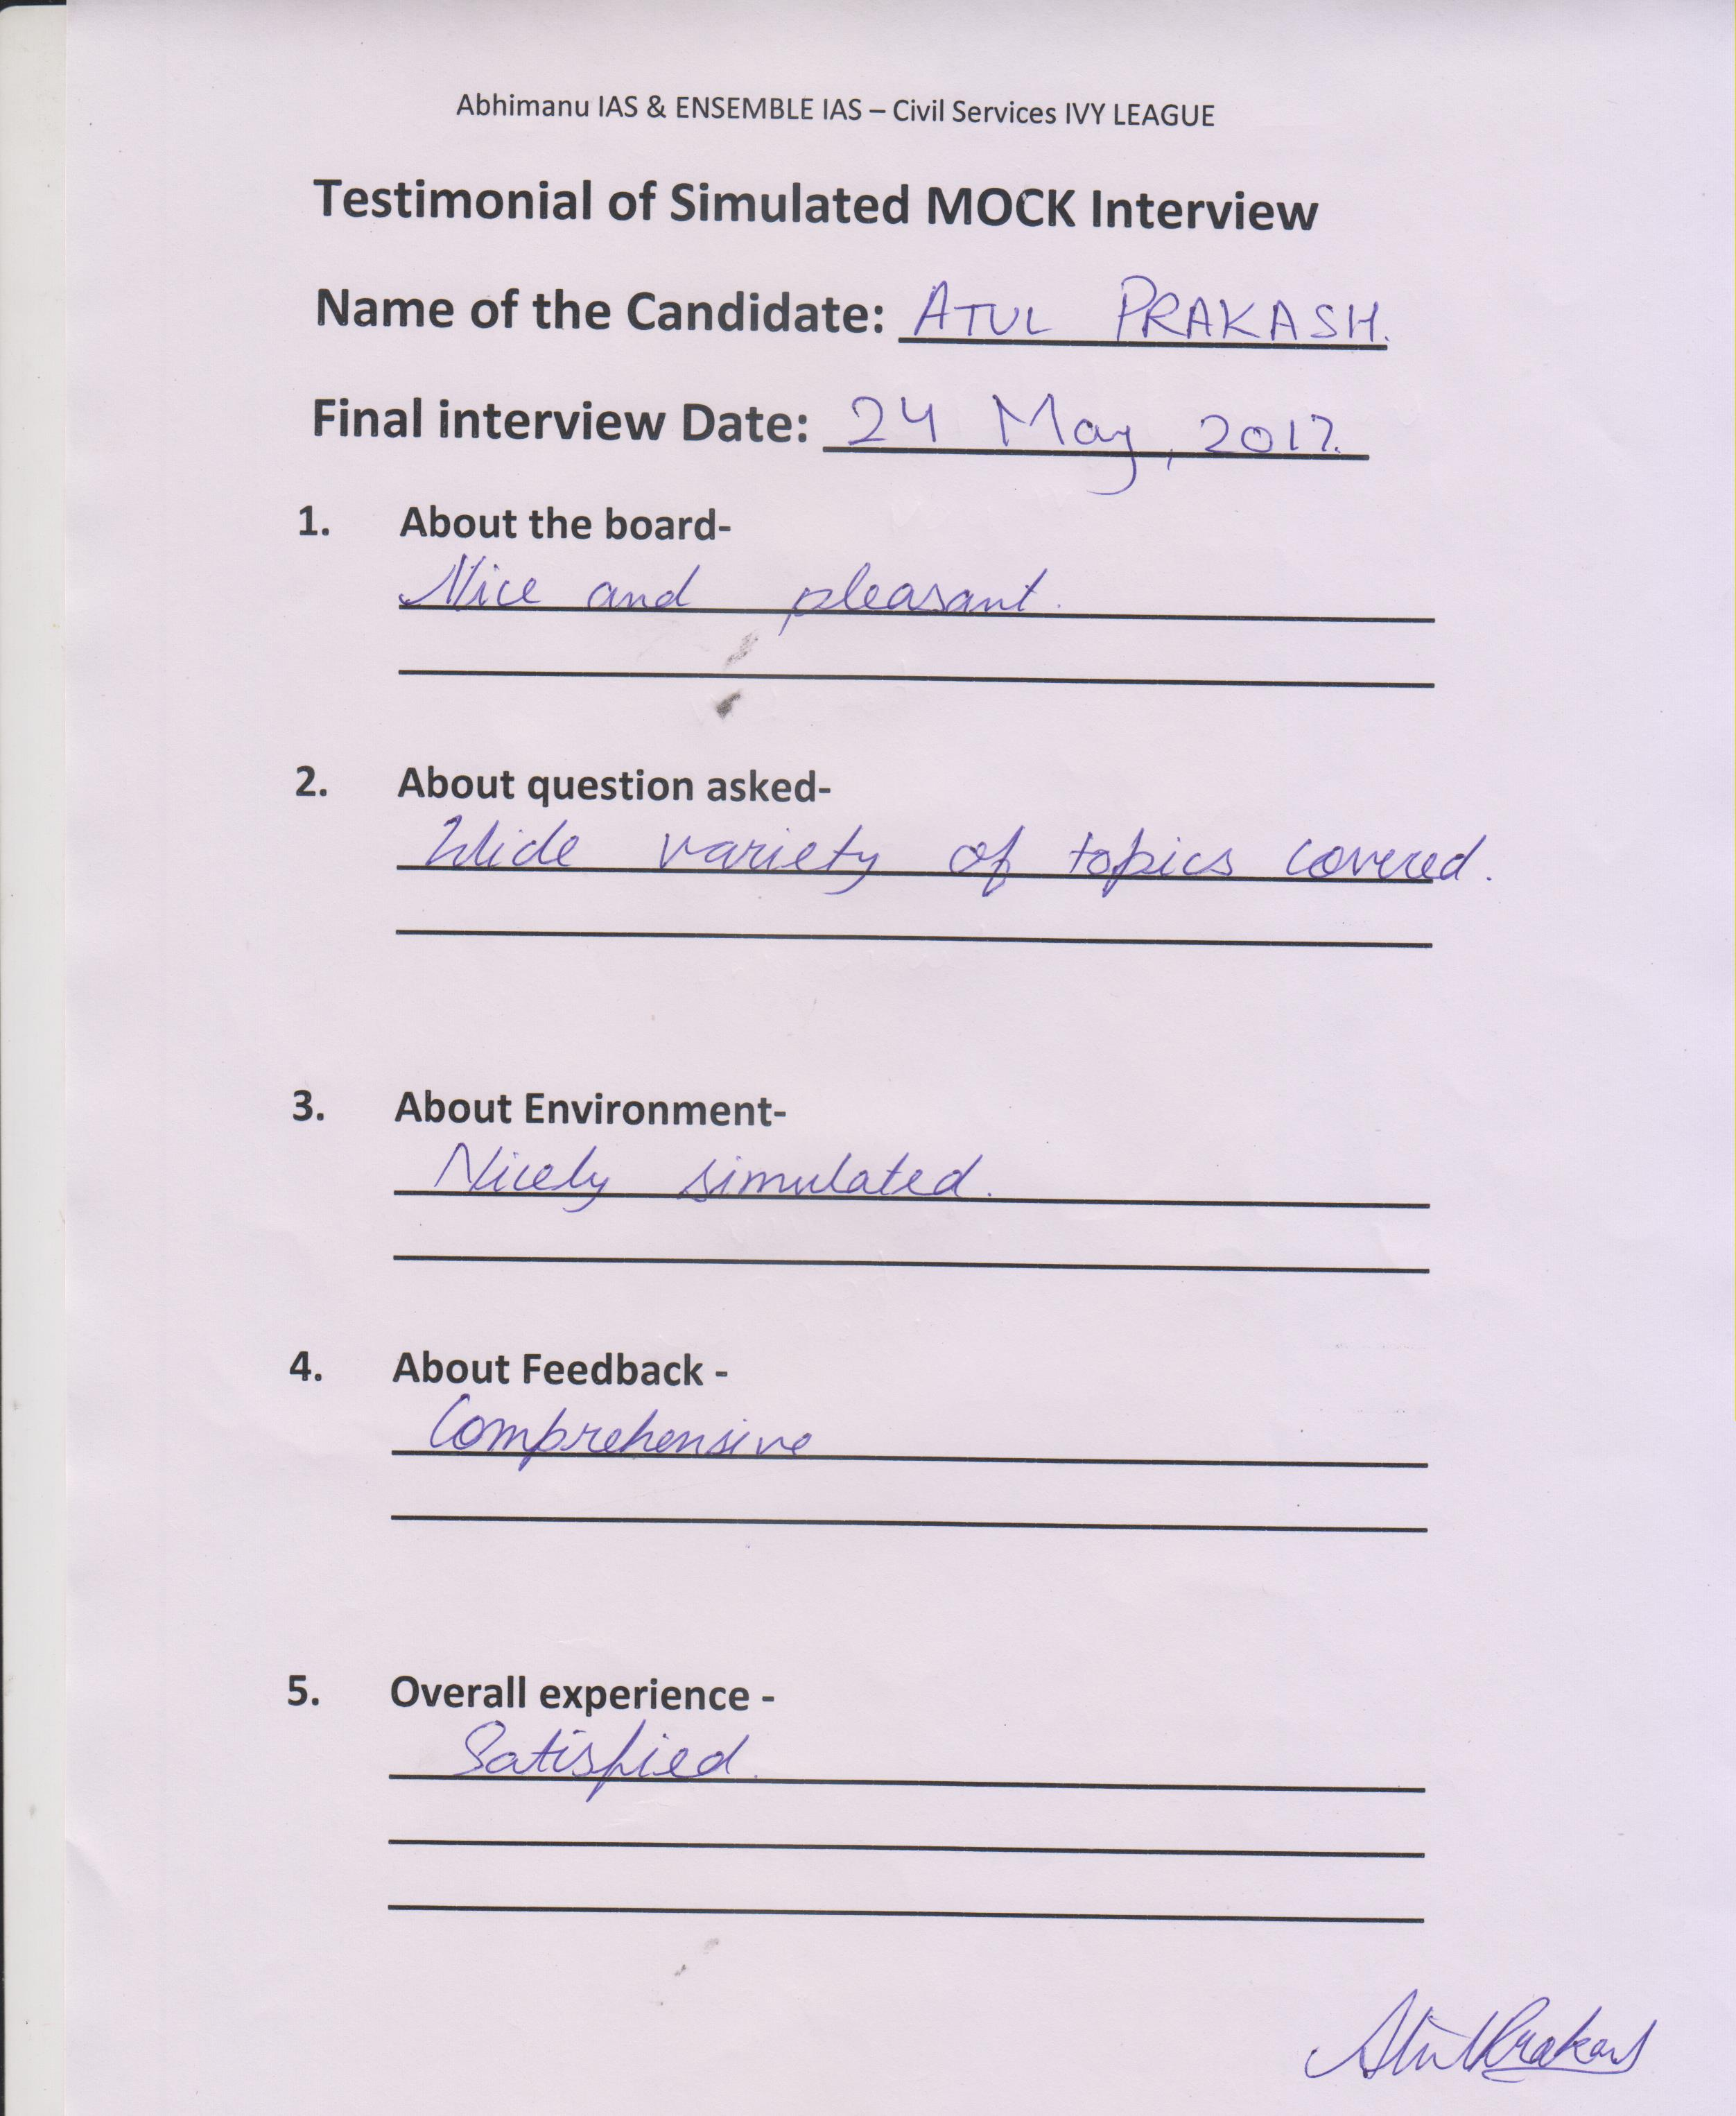 Interview Testimonial By- Atul Prakash